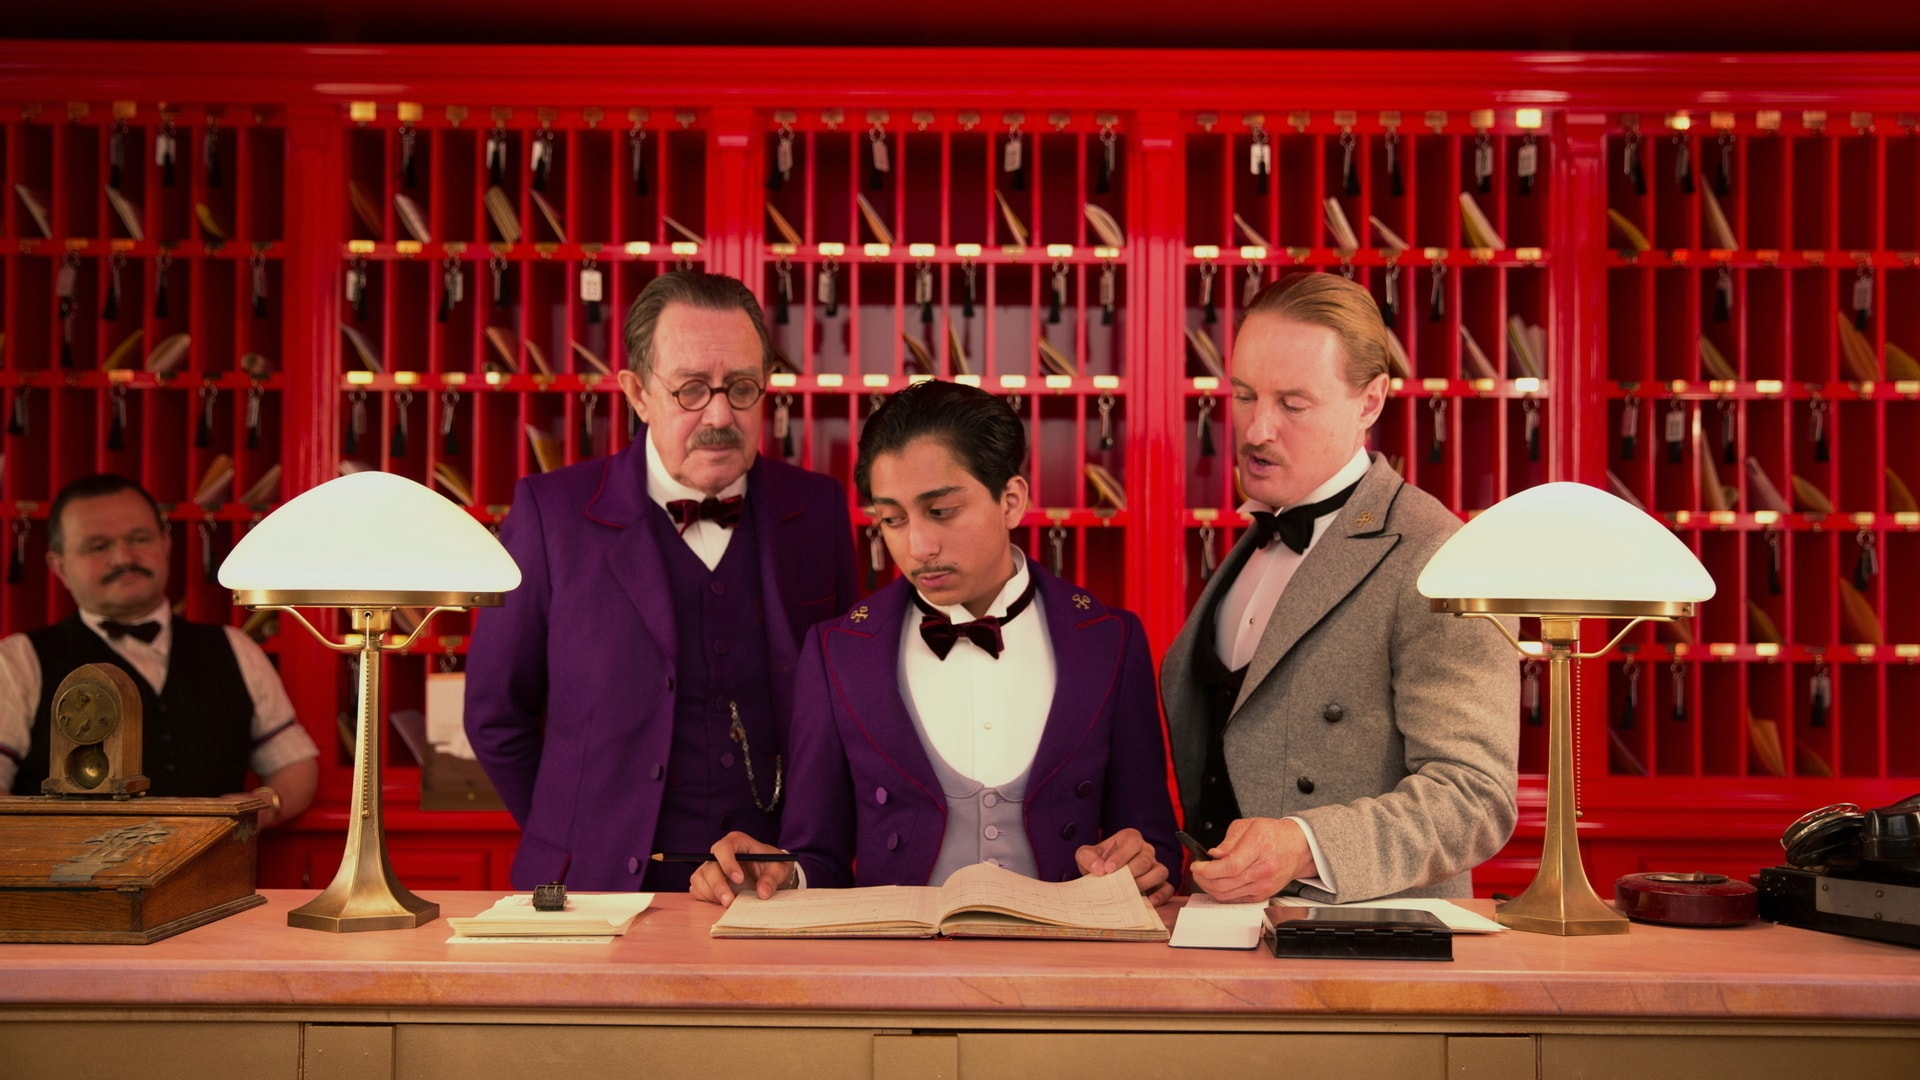 The Grand Budapest Hotel HQ wallpapers